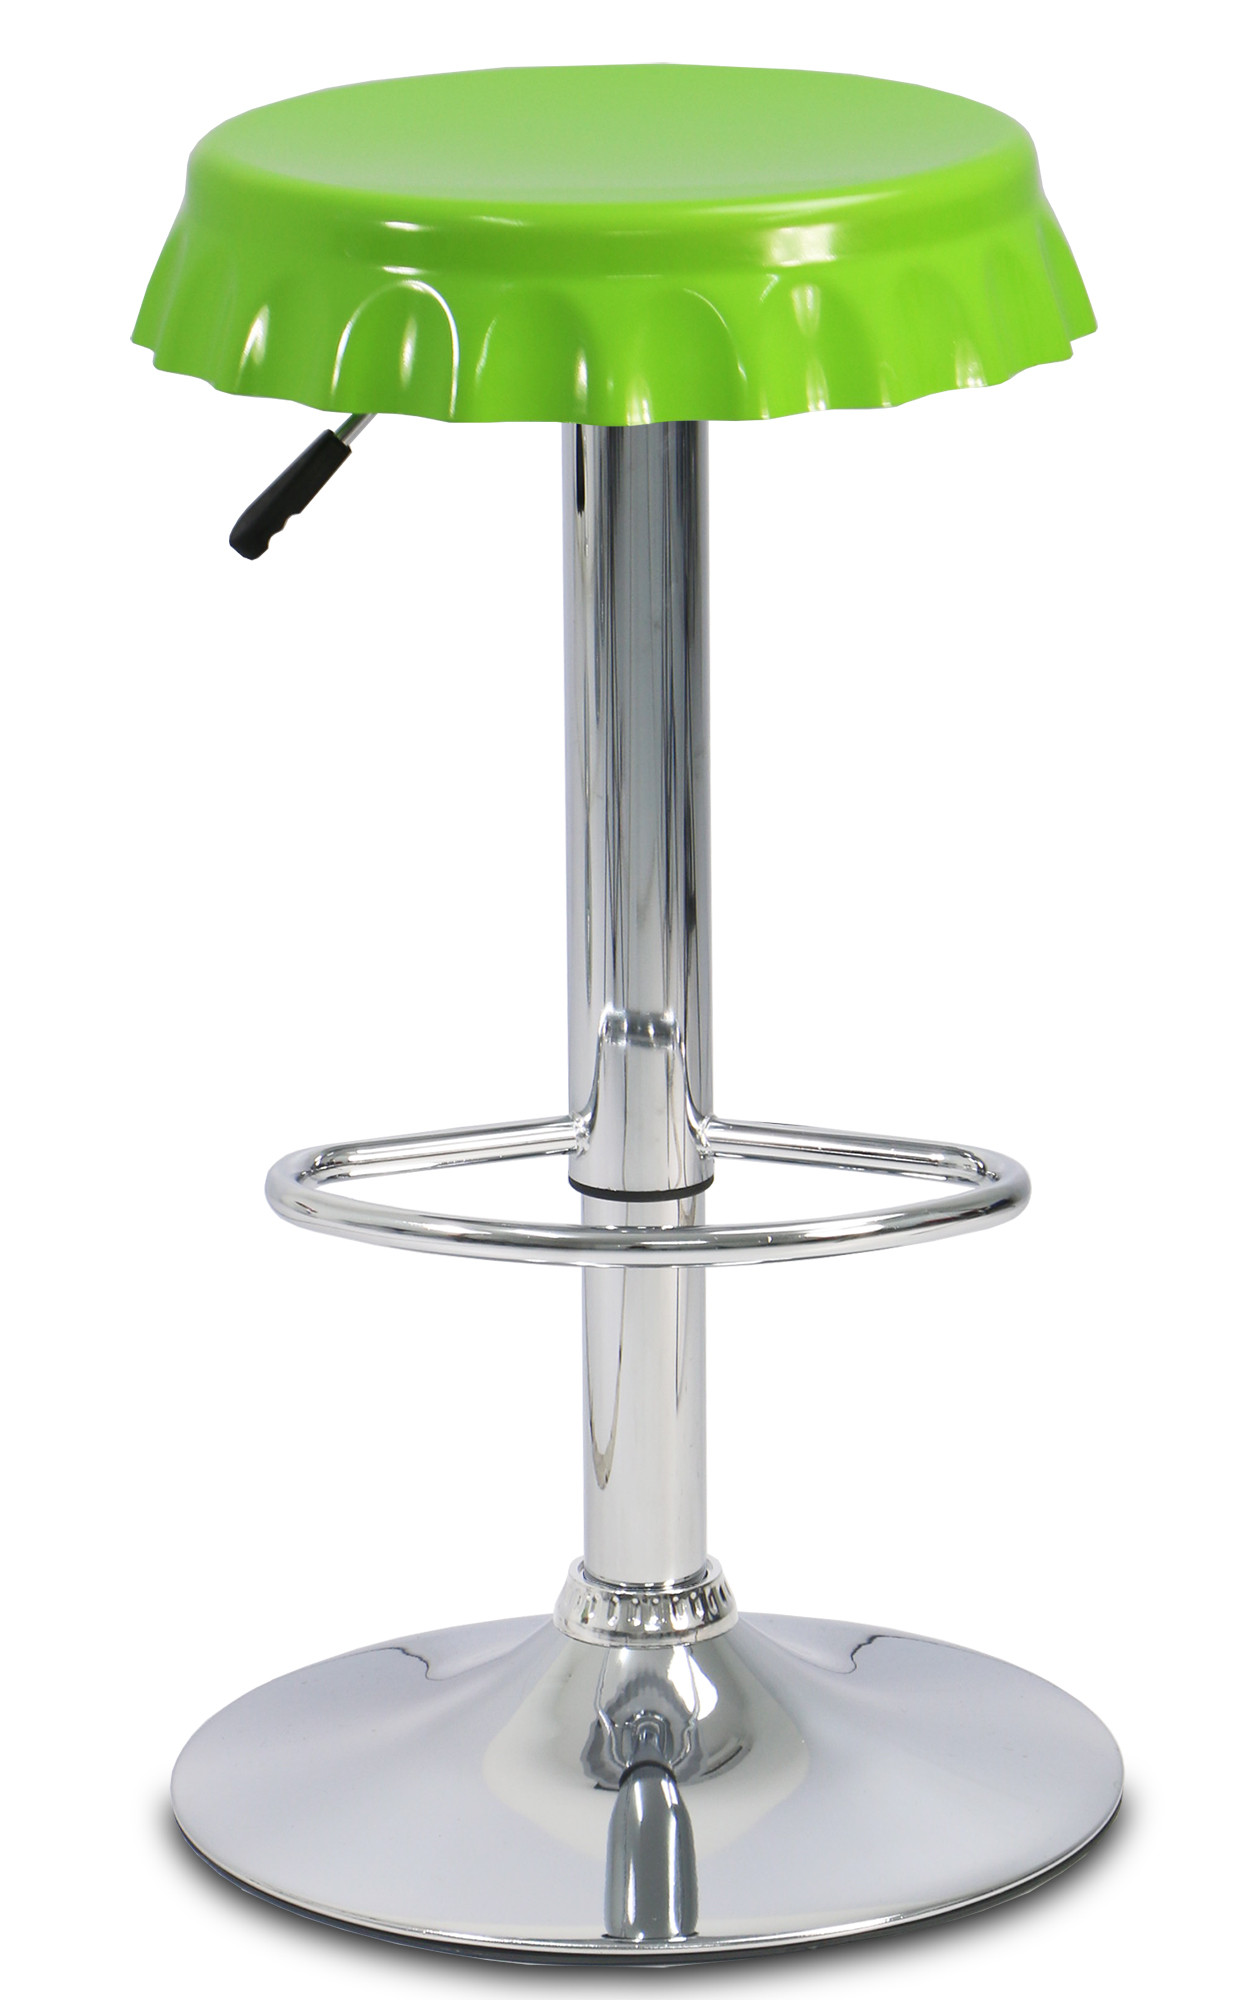 Bottle cap bar stool green display gallery item 1 display gallery item 2